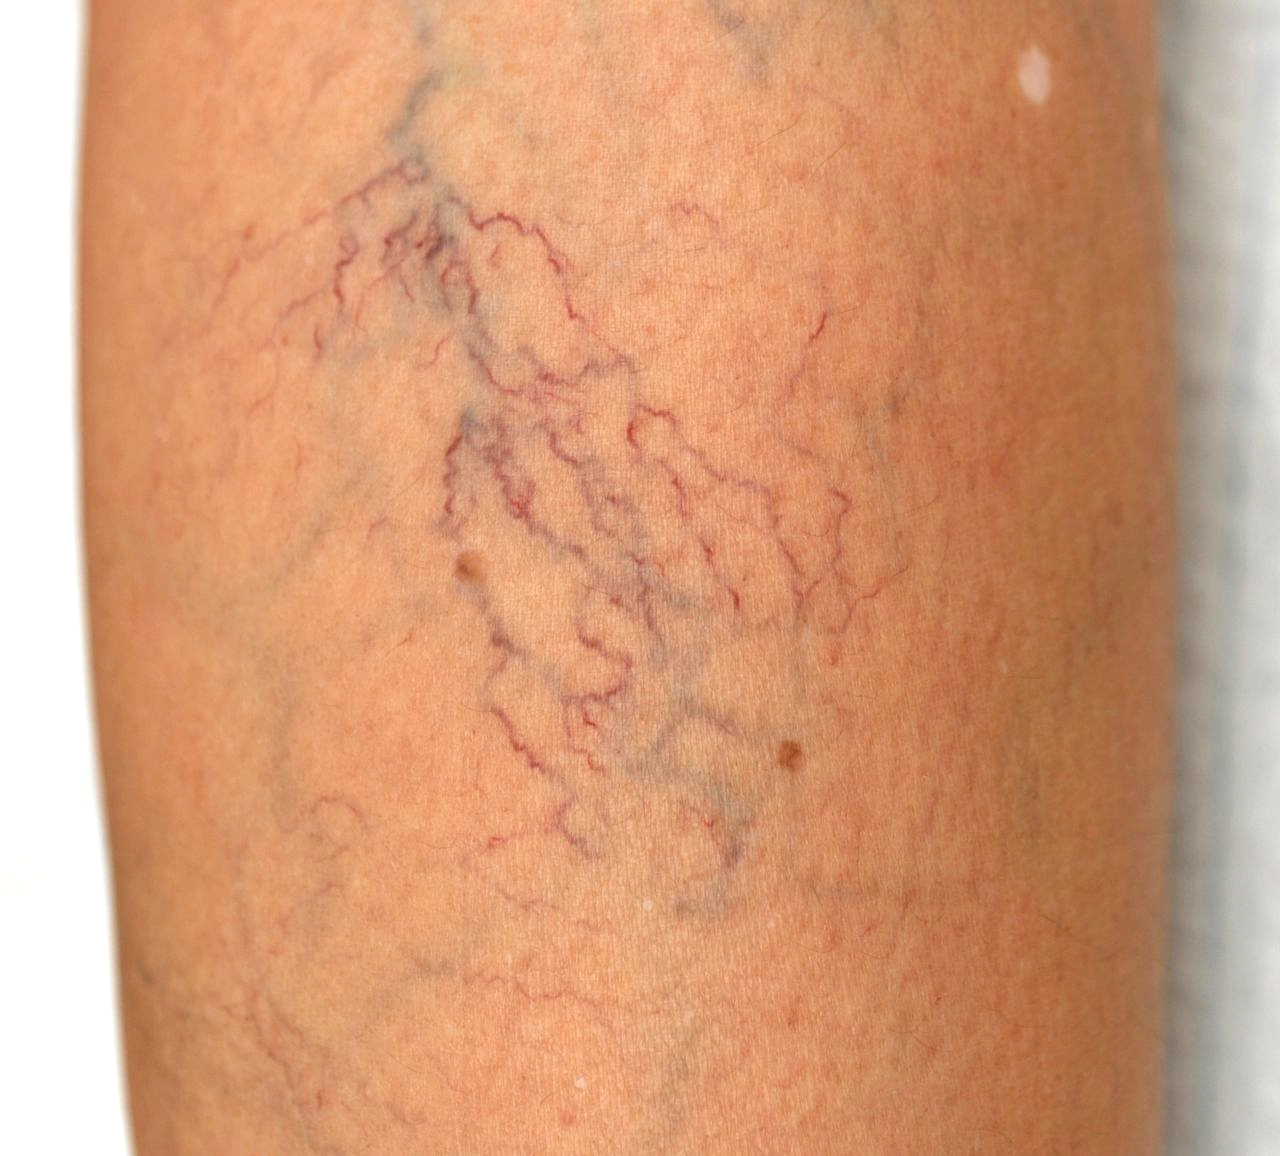 Spider Veins can be physically uncomfortable, ugly, and a warning sign of a dangerous vein problem called venous insufficiency. In this article, you will learn what spider veins are, how to get rid of spider veins, and where you can find a reliable vein treatment clinic.